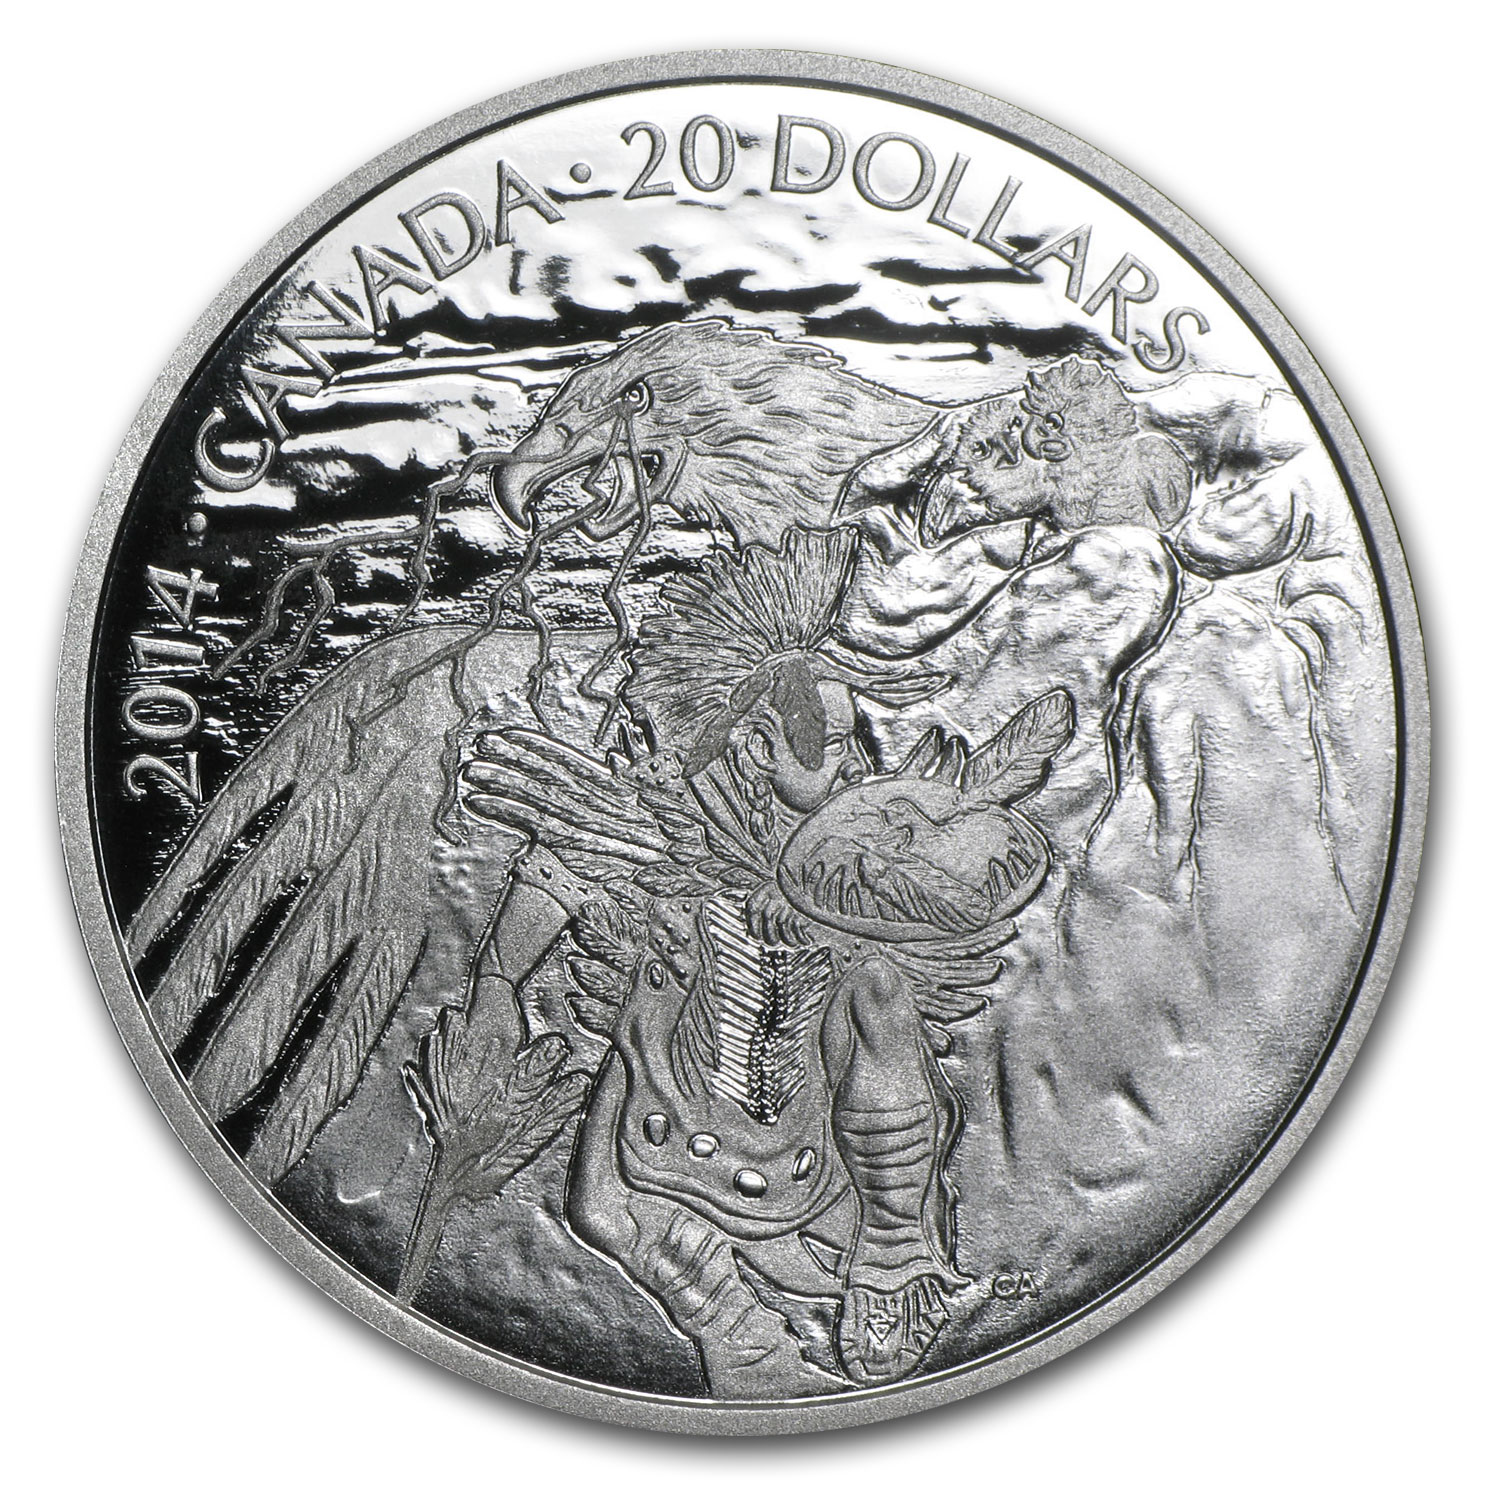 2014 1 oz Silver Canadian Nanaboozhoo and The Thunderbird's Nest